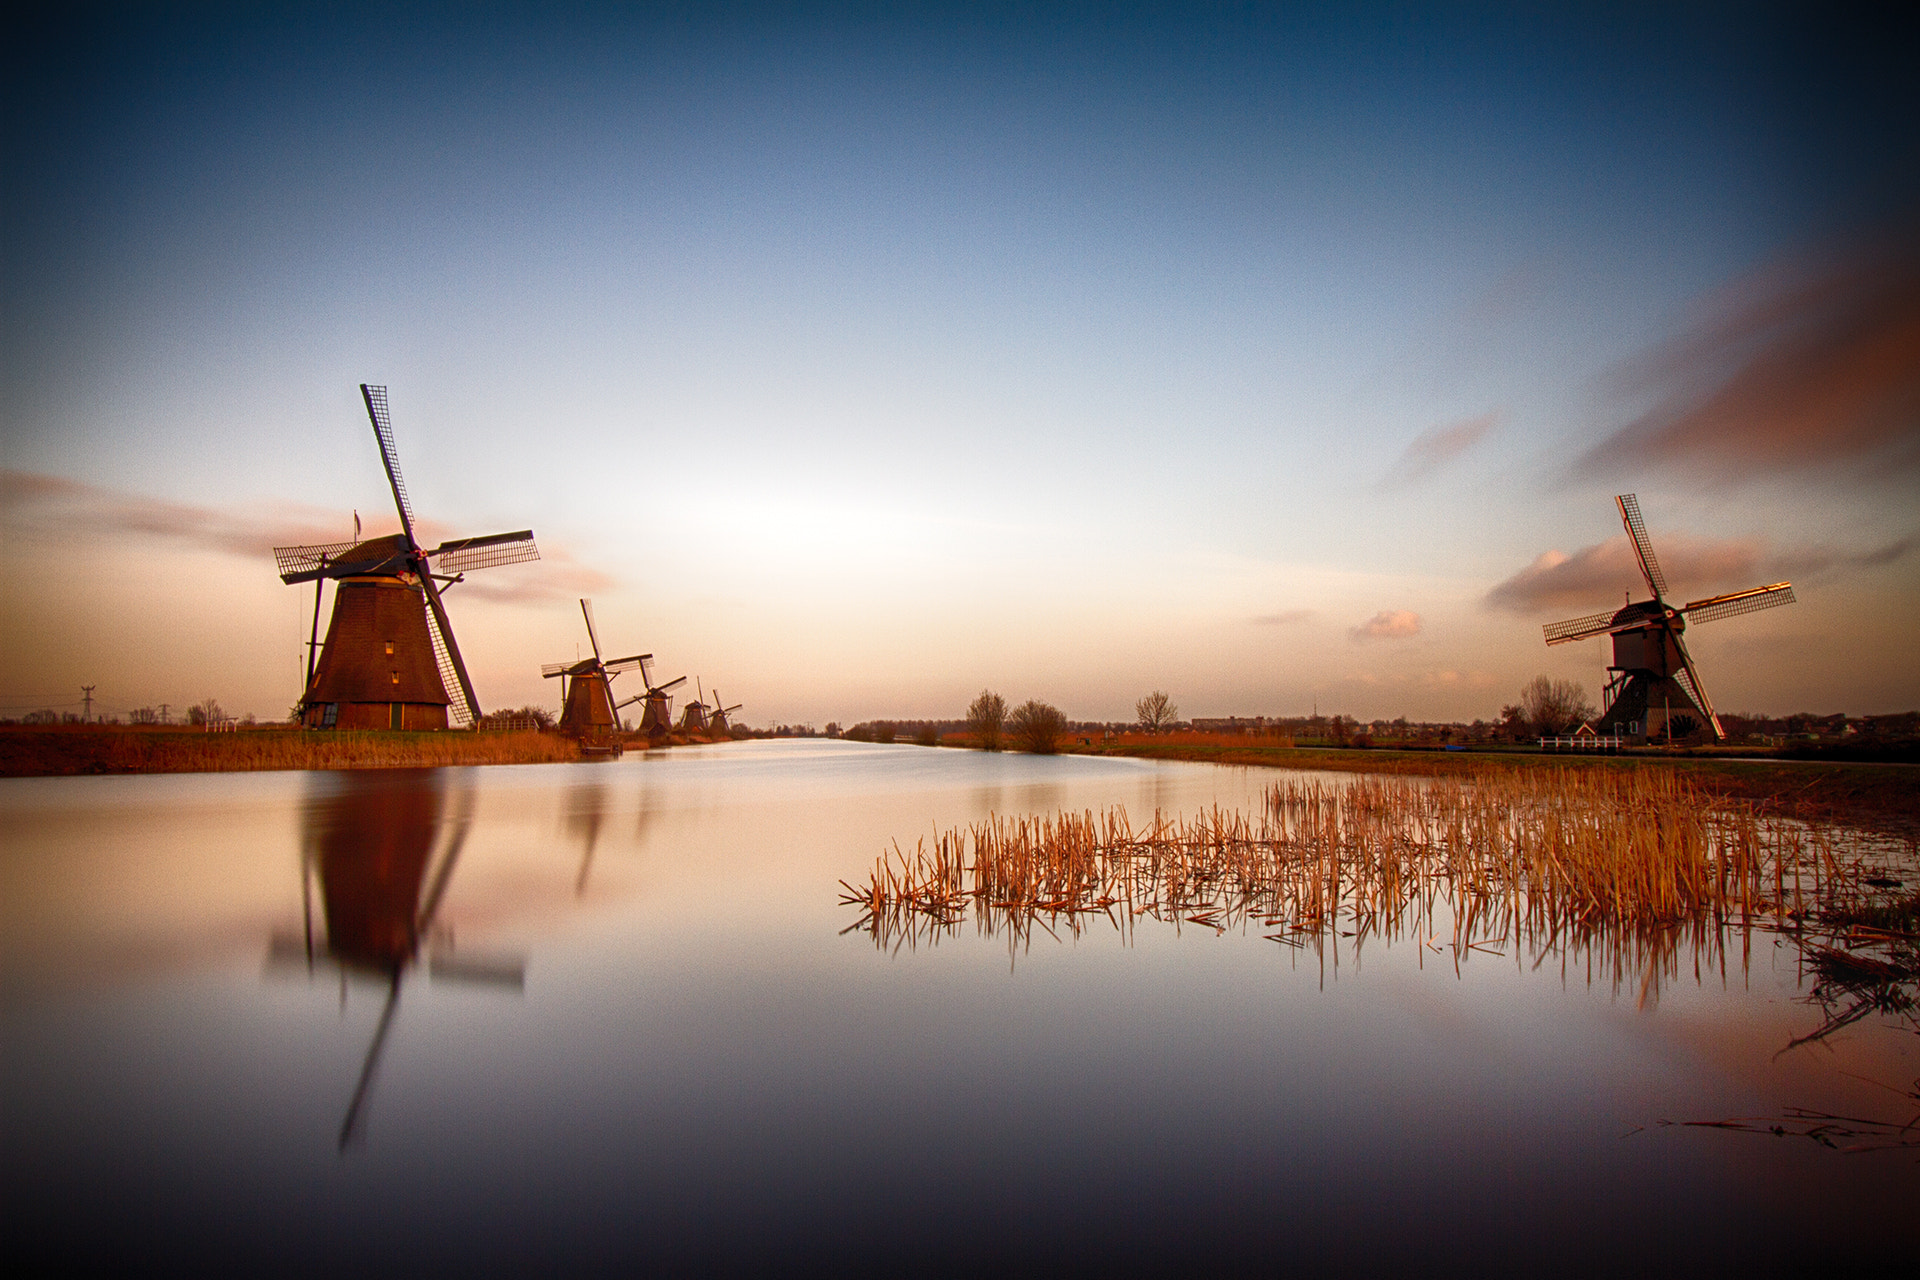 Photograph Kinderdijk by Kees Smans on 500px